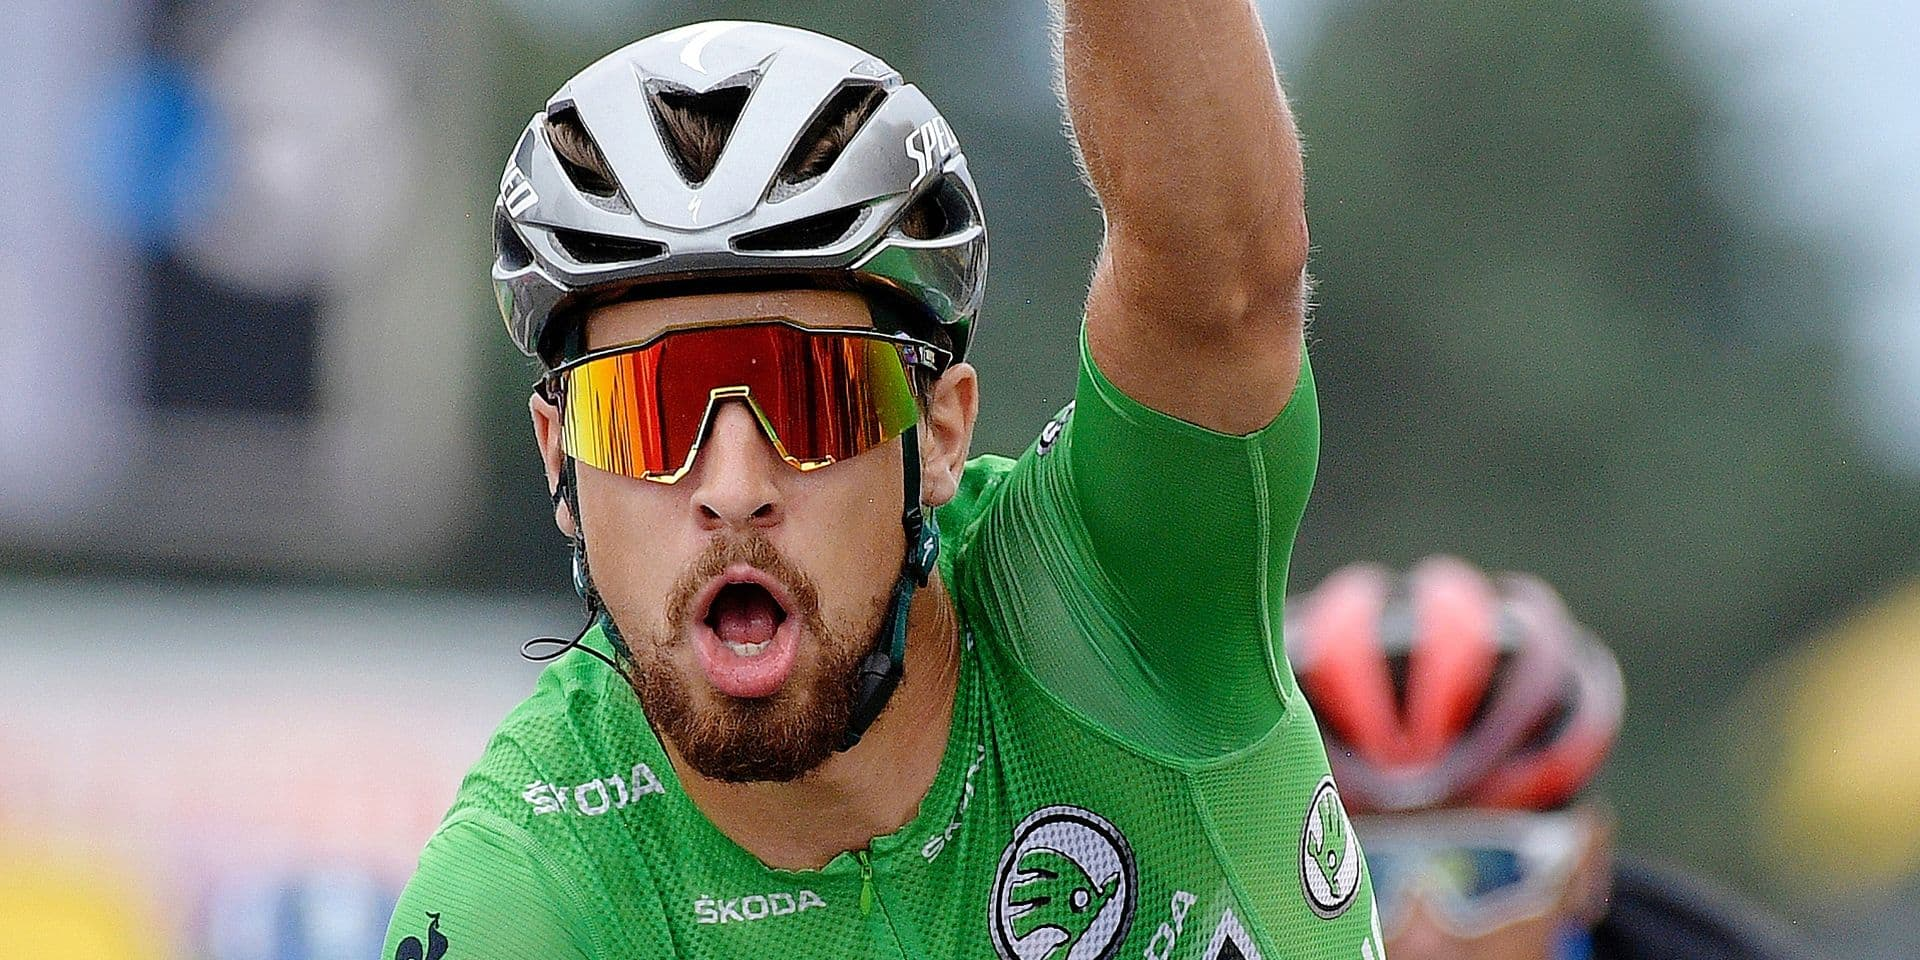 Slovak Peter Sagan of Bora-Hansgrohe celebrates as he crosses the finish line to win the 13th stage in the 105th edition of the Tour de France cycling race, from Bourg d'Oisans to Valence (169,5 km), France, Friday 20 July 2018. This year's Tour de France takes place from July 7th to July 29th. BELGA PHOTO YORICK JANSENS